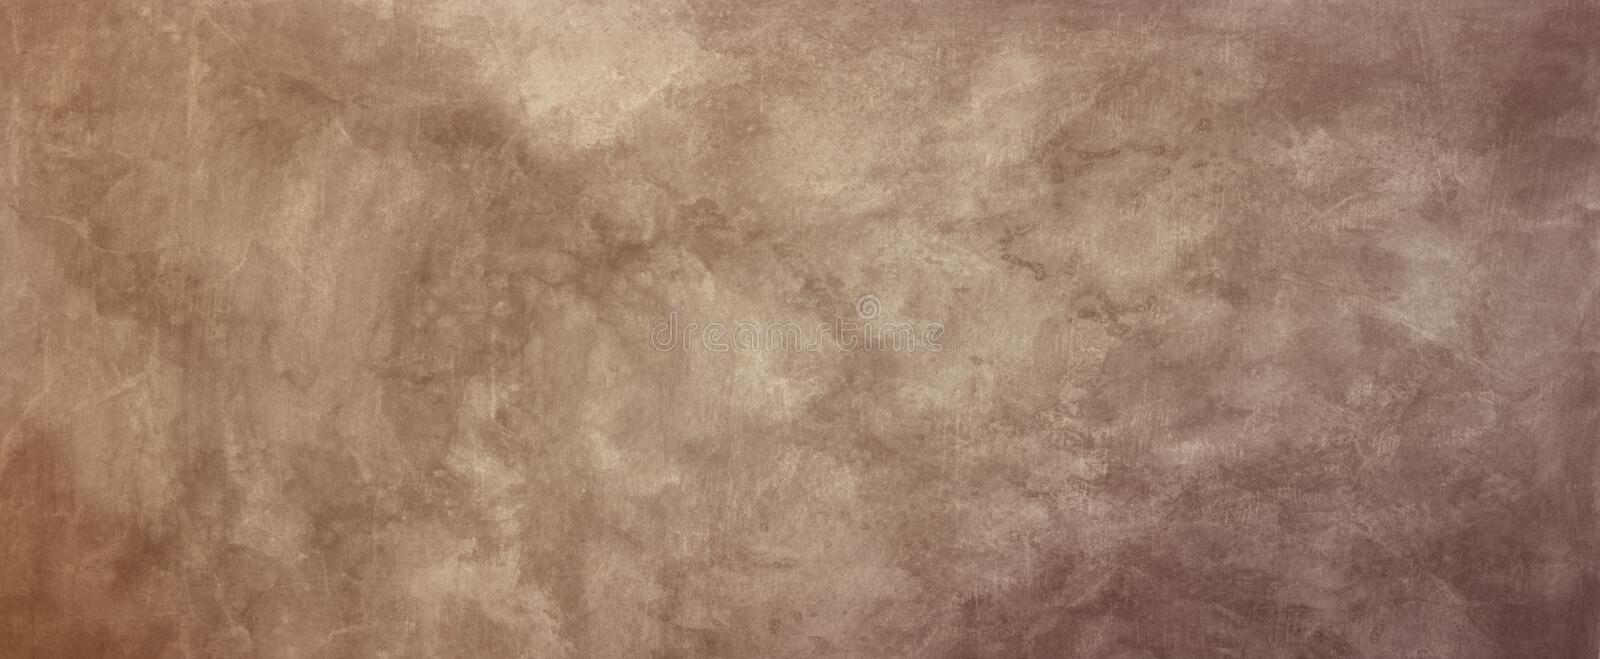 Old brown paper parchment background illustration with sepia and white worn grunge texture design stock illustration